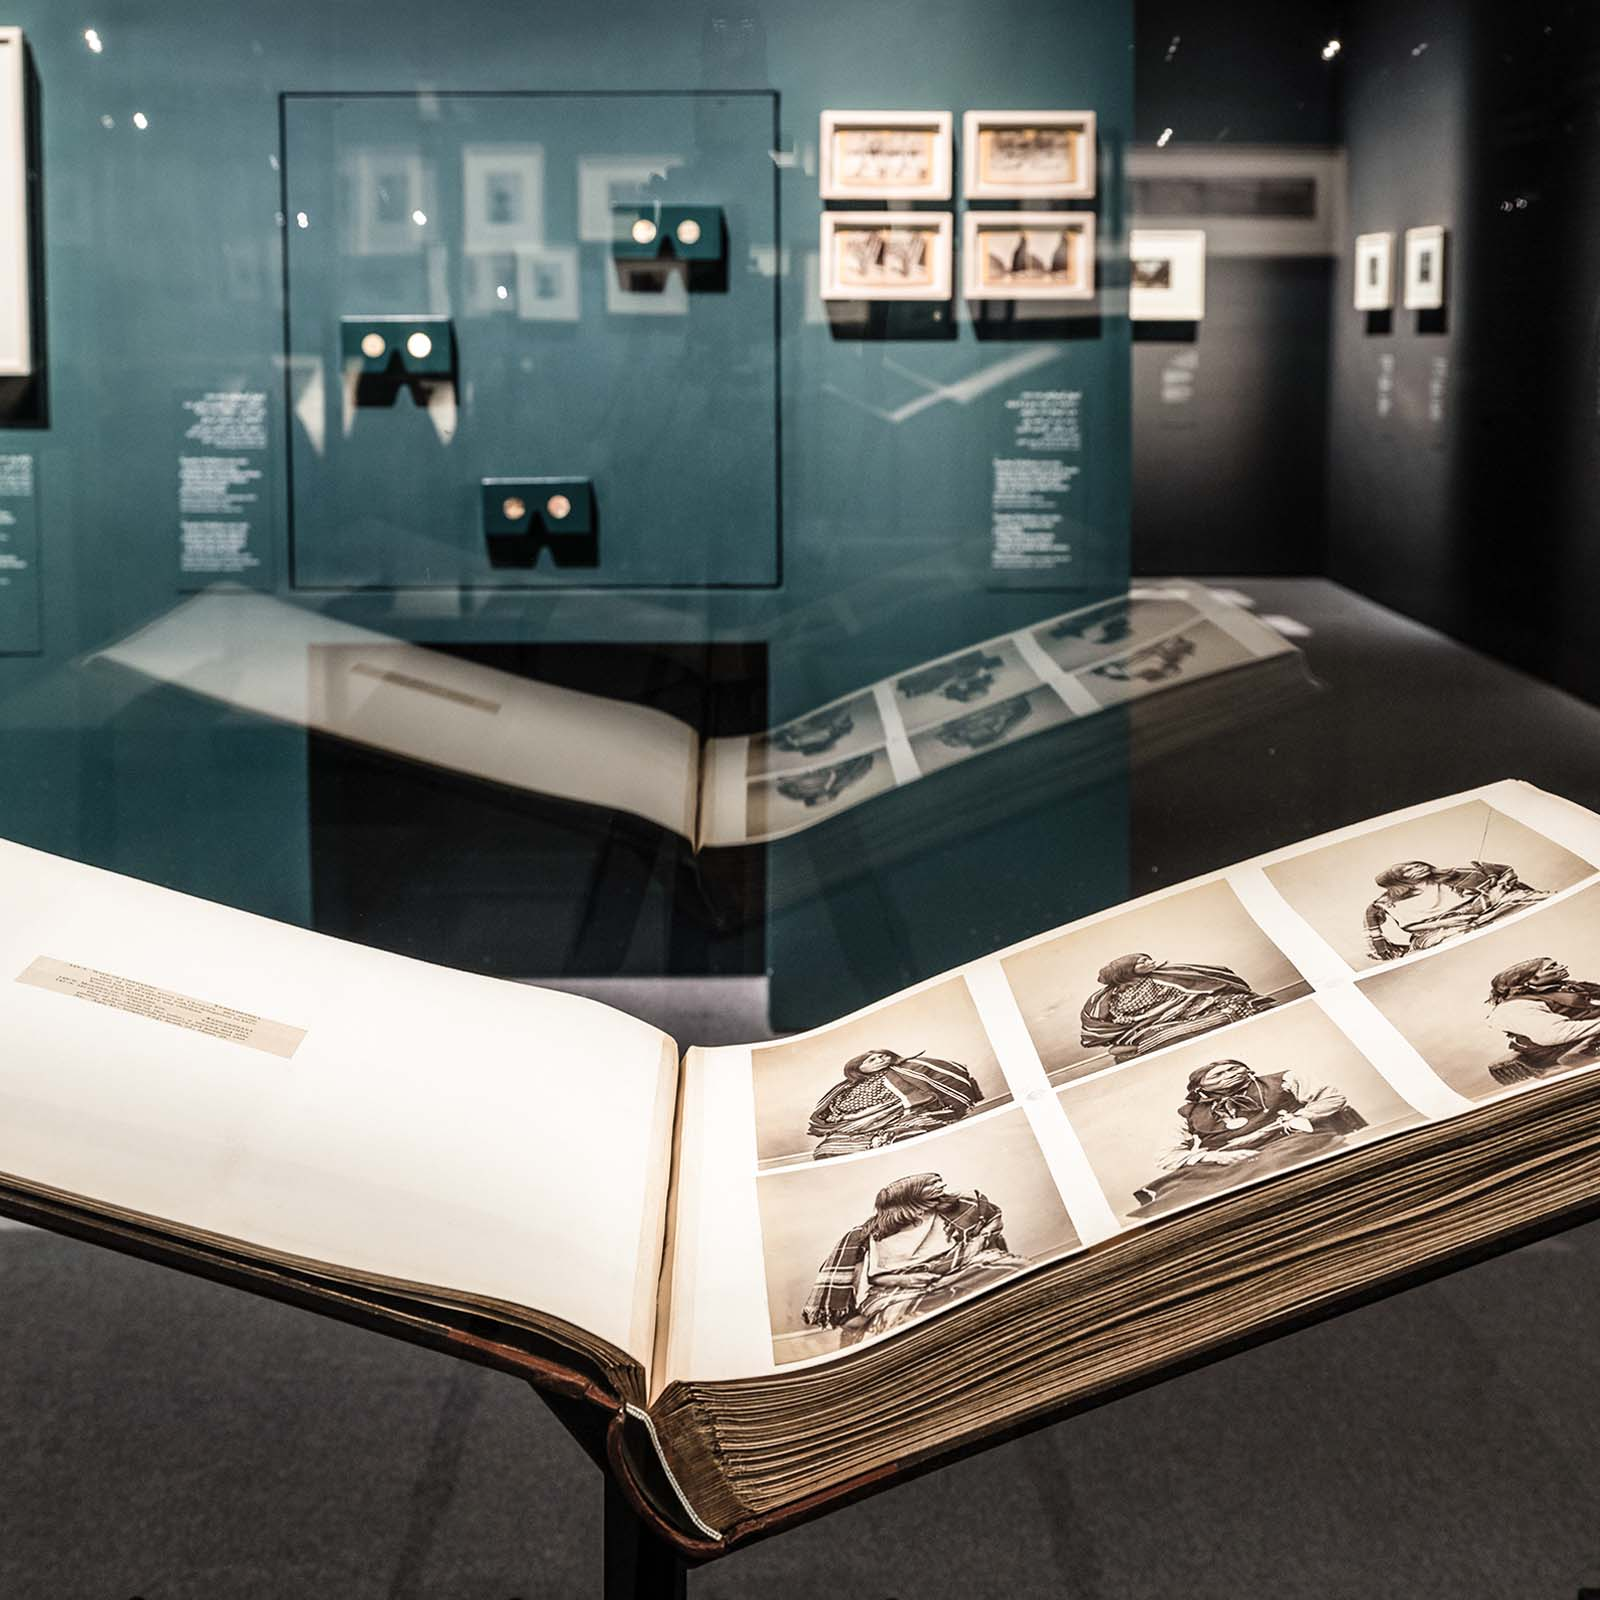 International Exhibition Opening the Album of the World in partnership with musée du quai Branly - Jacques Chirac